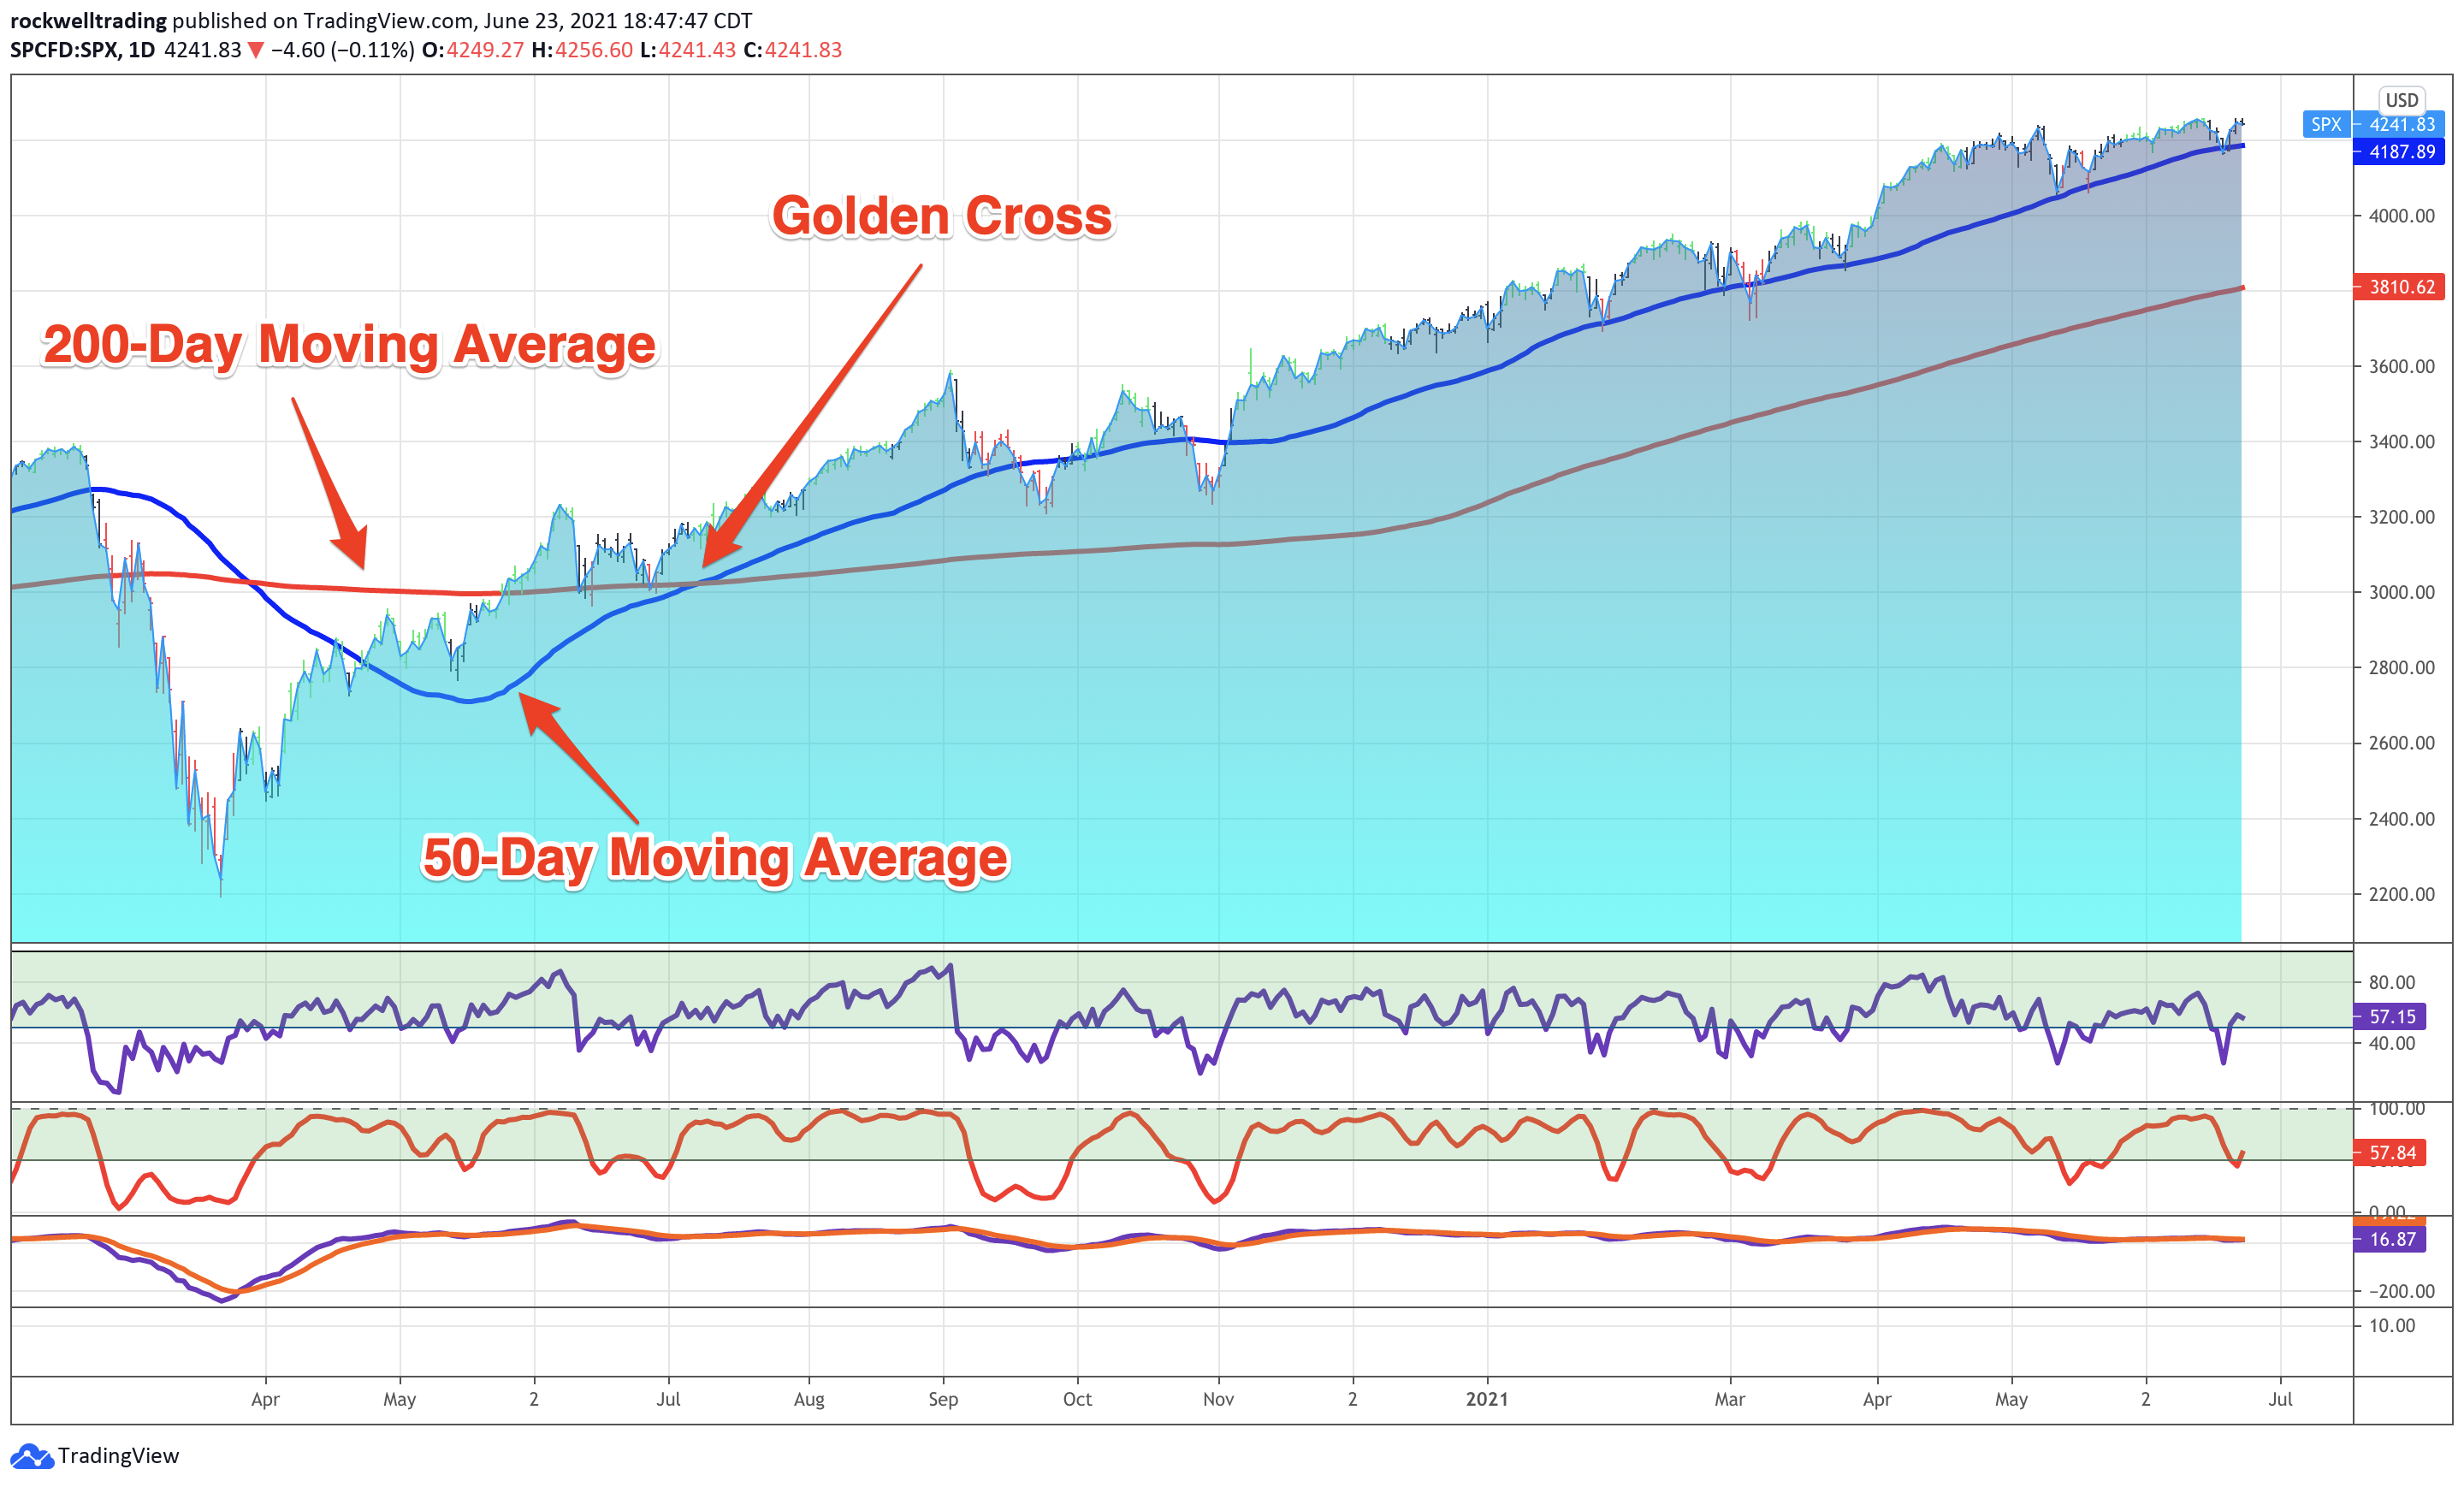 SPX After COVID Drop on July 8, 2020 - Golden Cross Indicating strong confirmation